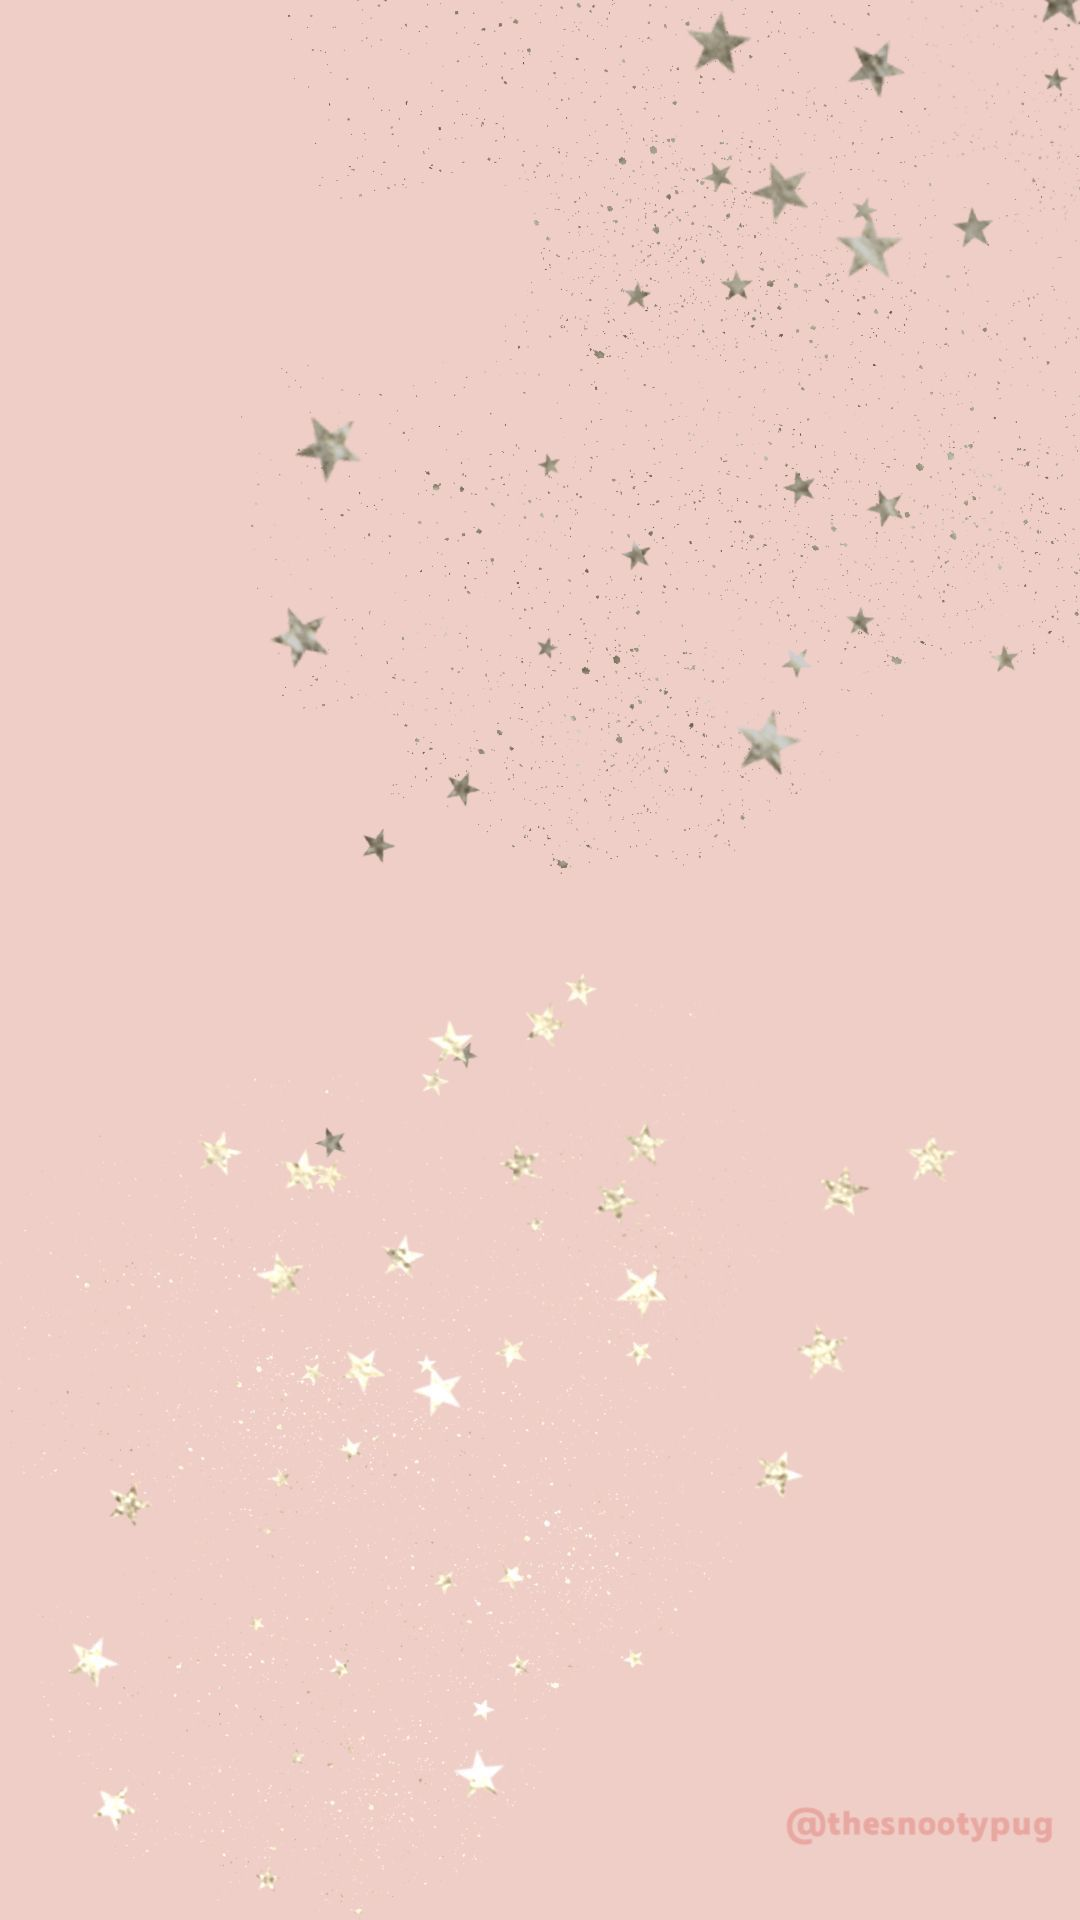 Papier Peint Rose Etoiles In 2020 Star Wallpaper Iphone Background Wallpaper Aesthetic Iphone Wallpaper